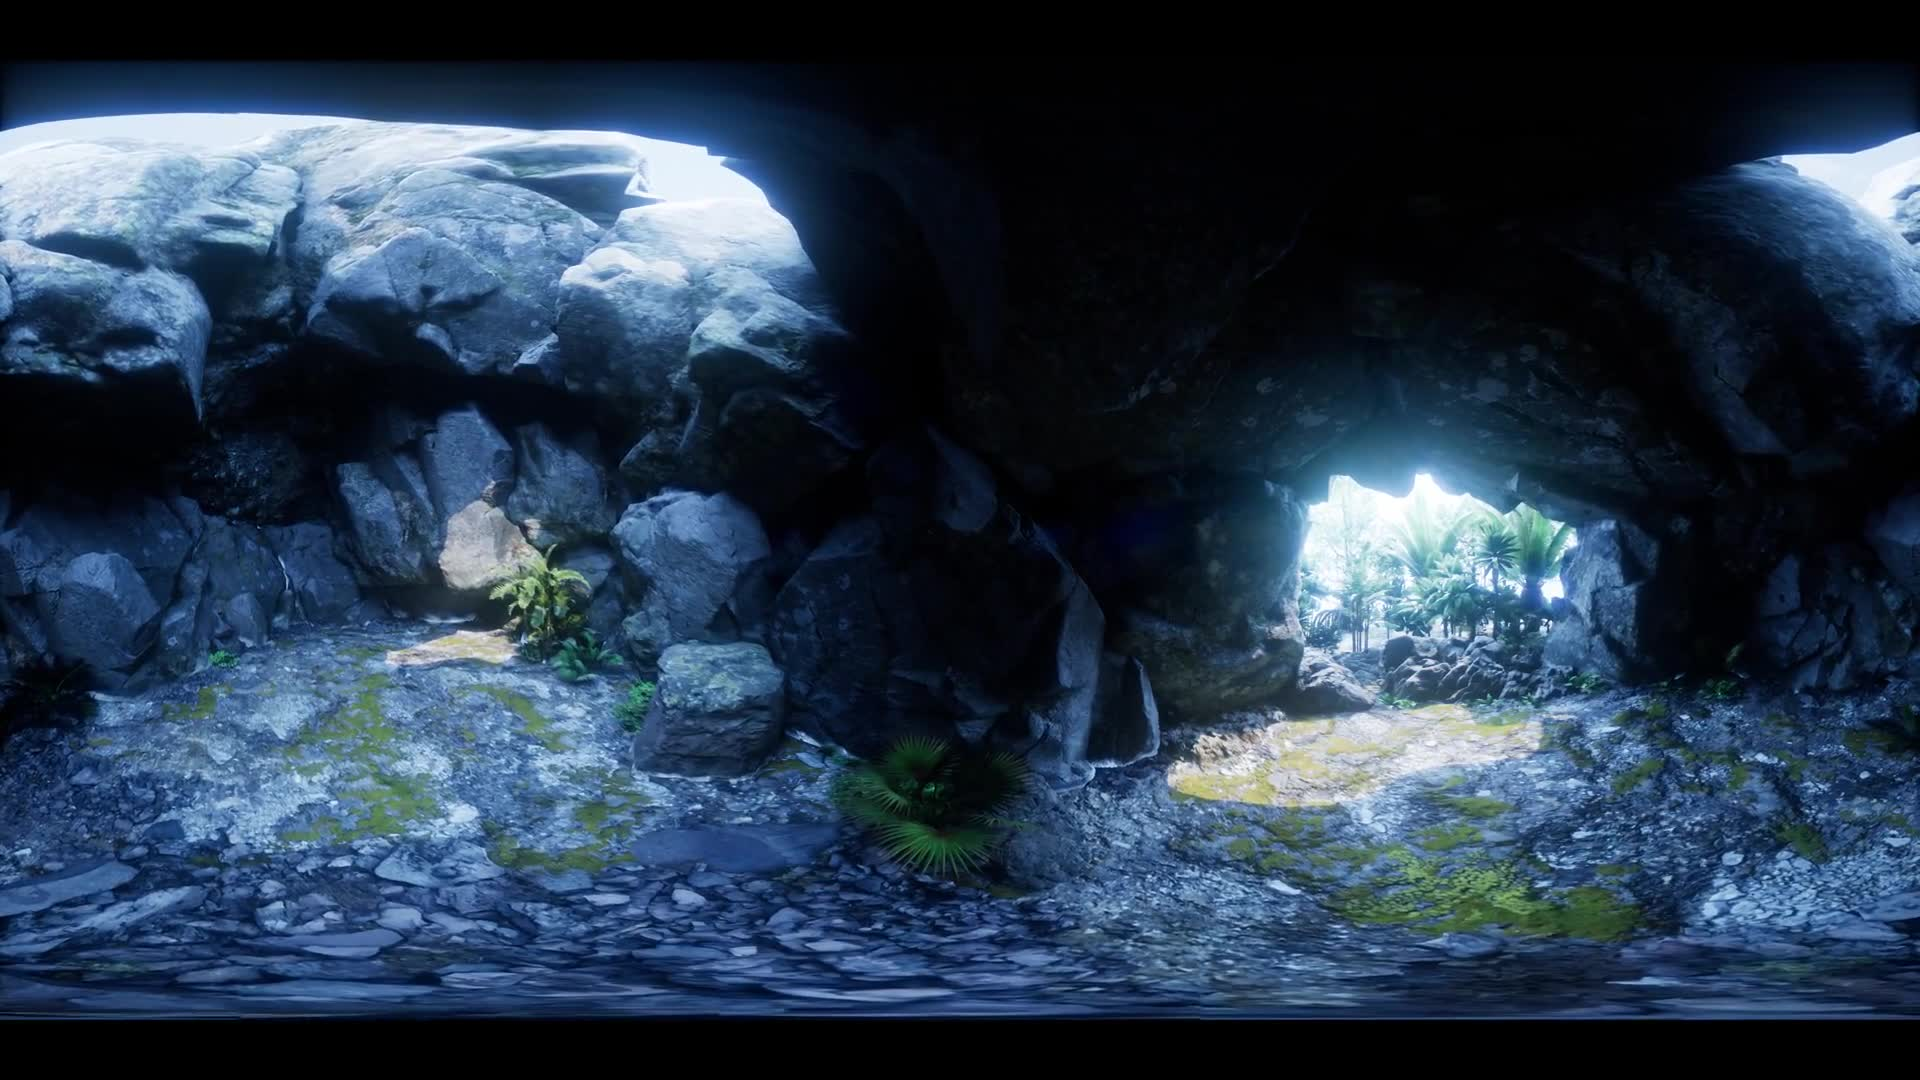 vr 360 camera moving inside tropical cave in jungle with palms and sun light. ready for use in virtual reality